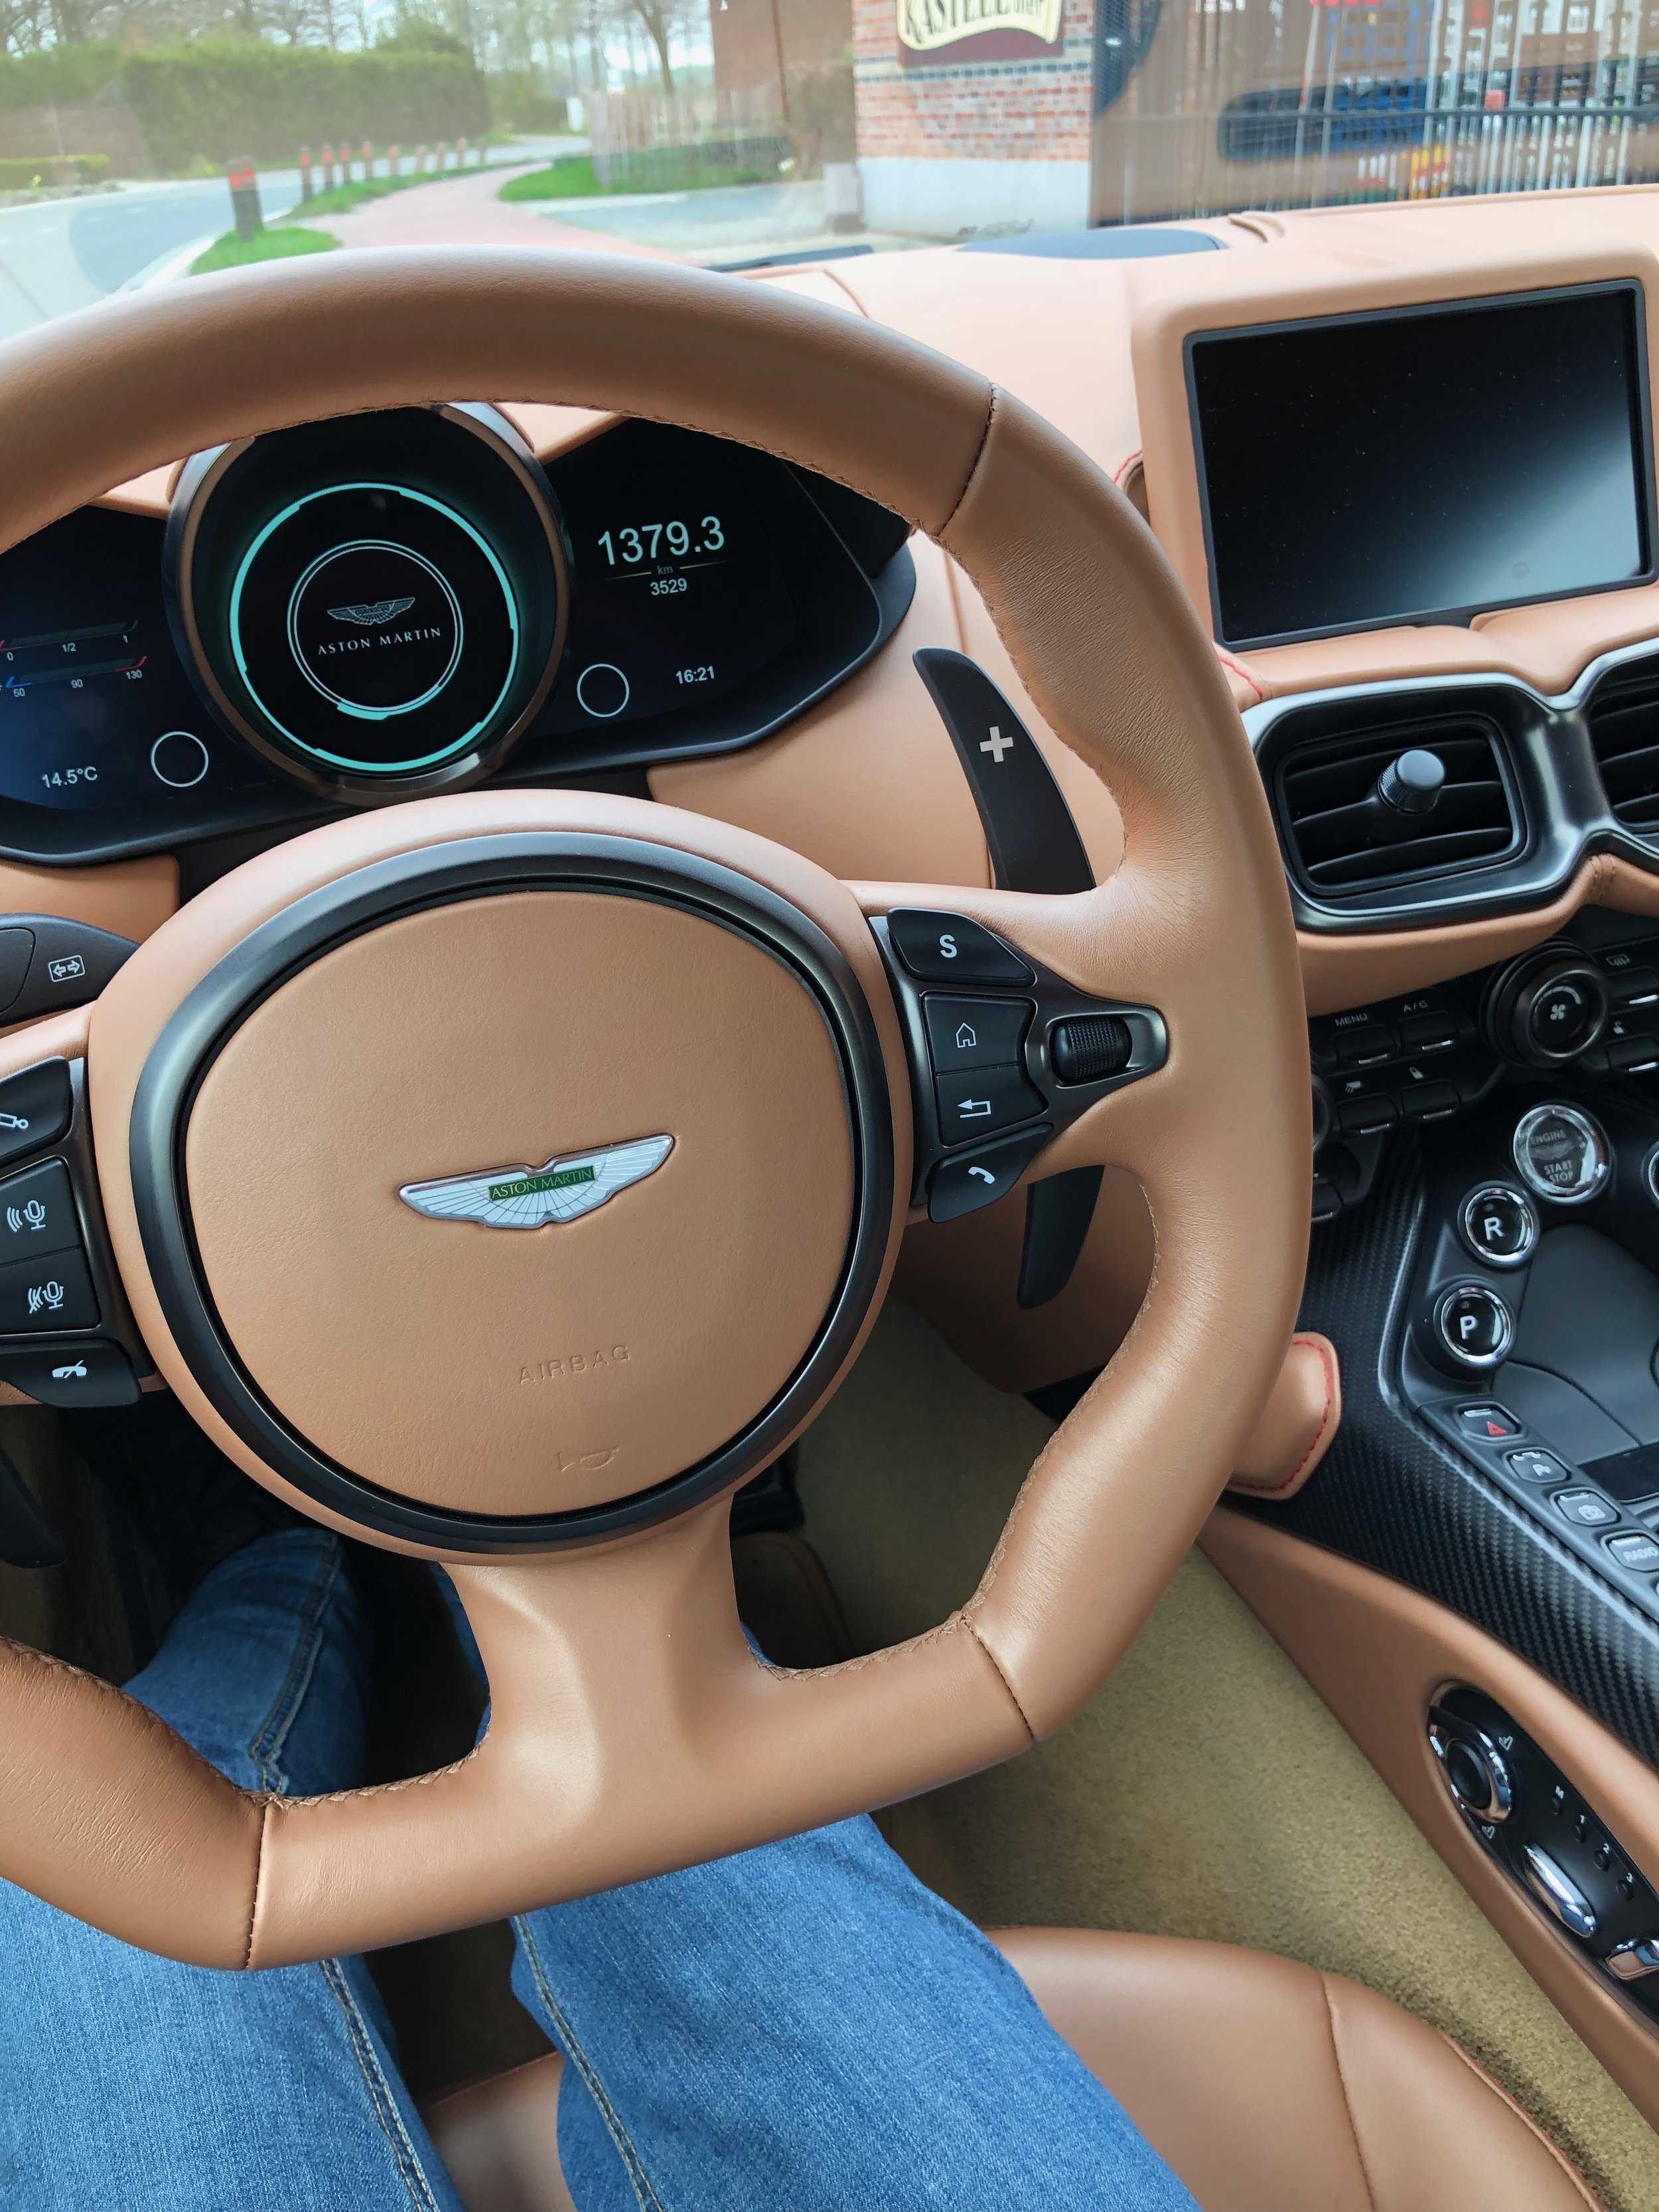 The interior of the Vantage is all beautiful leather